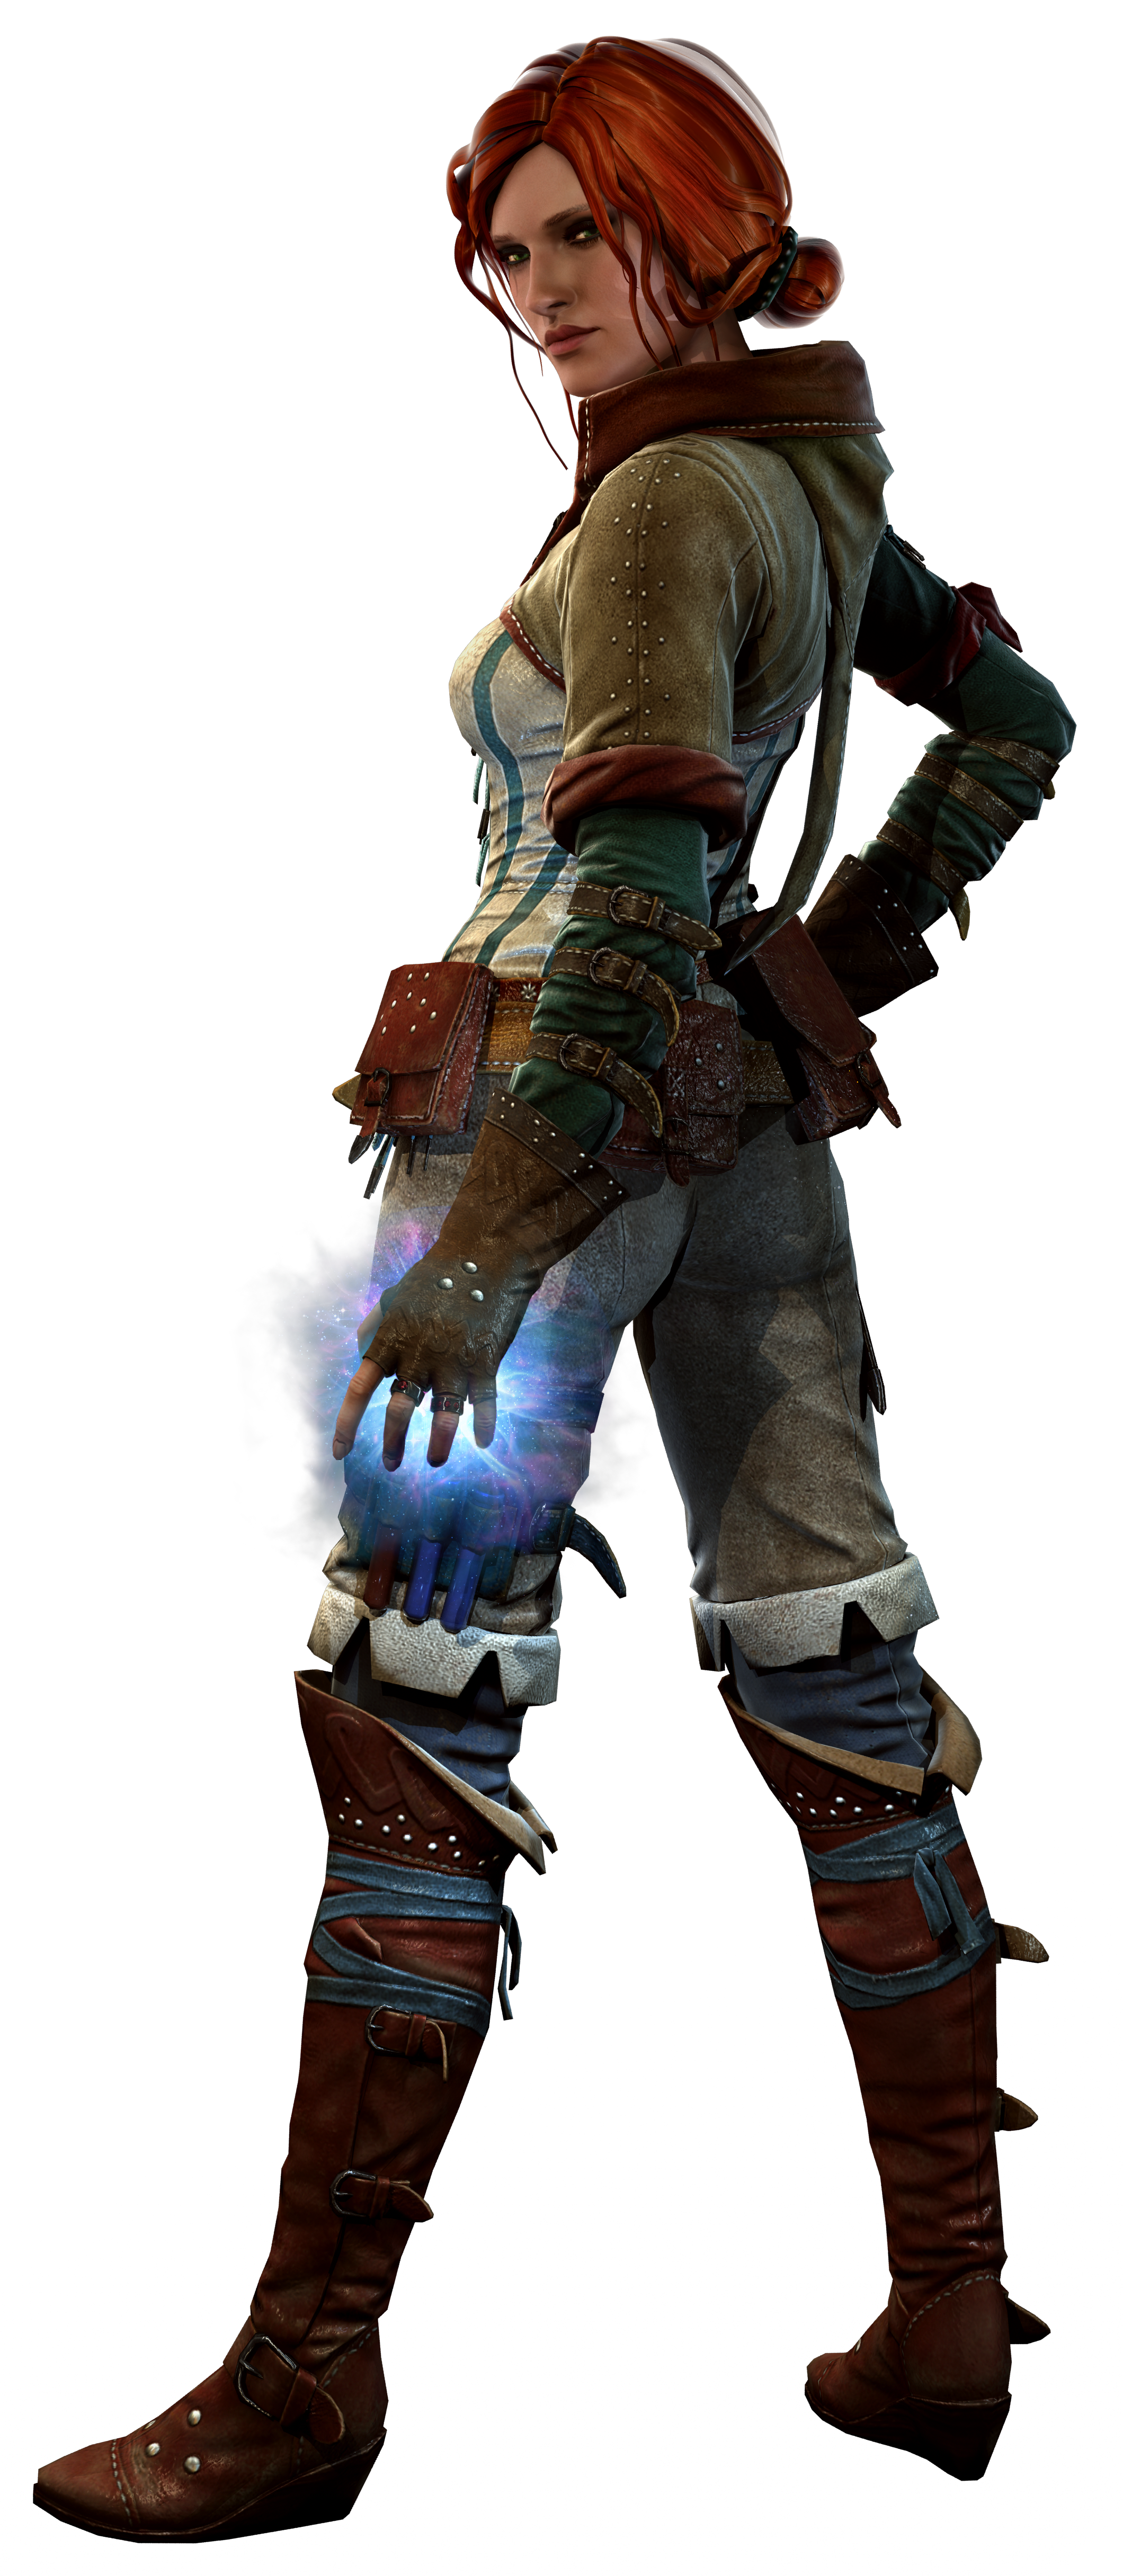 The Witcher 3 Triss